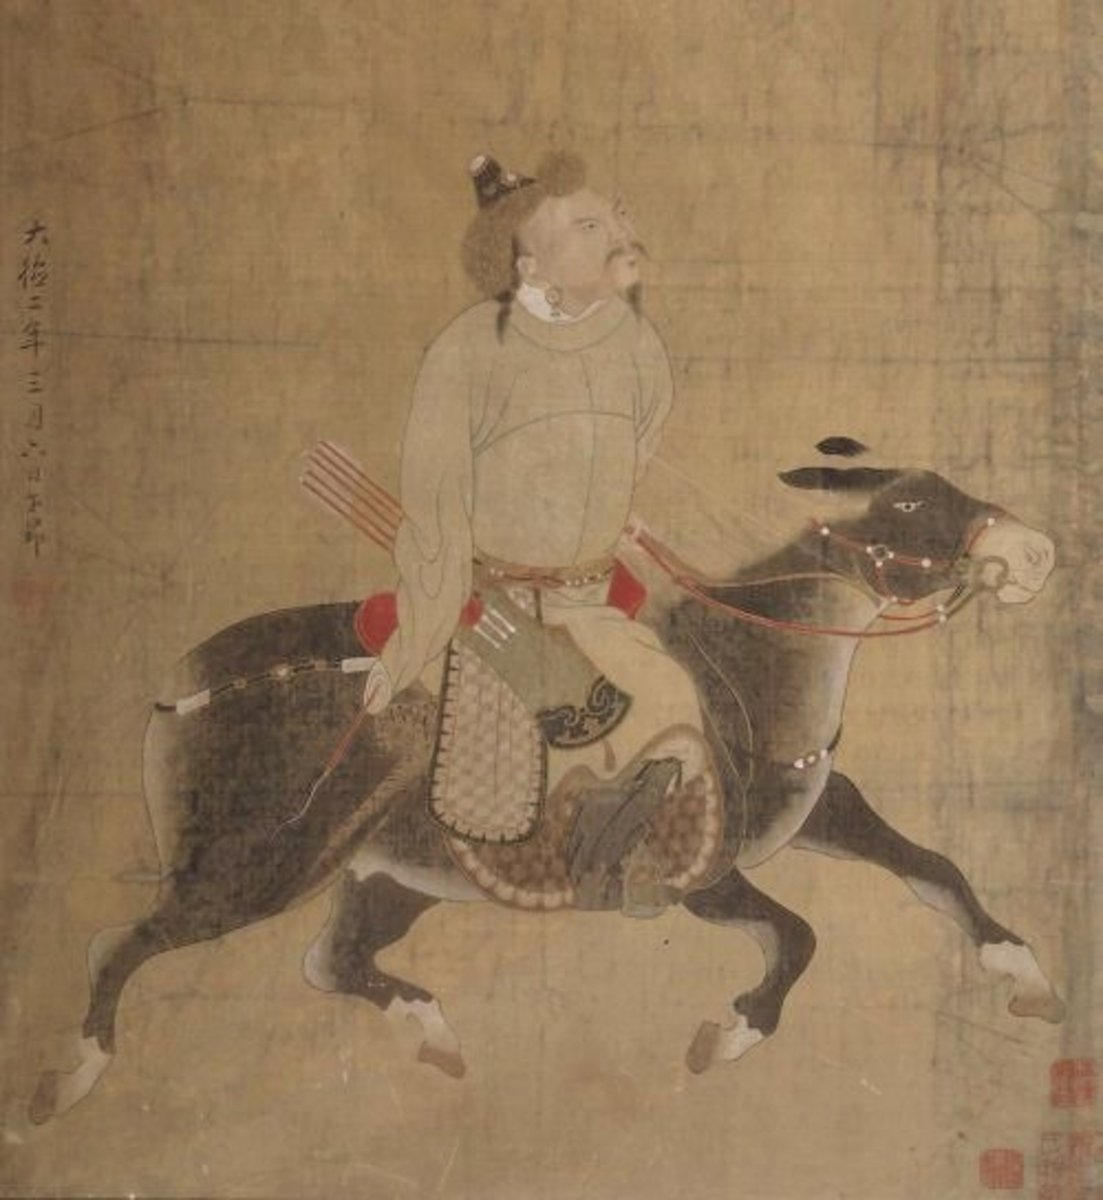 Did Khan die from injuries sustained after falling from his horse?